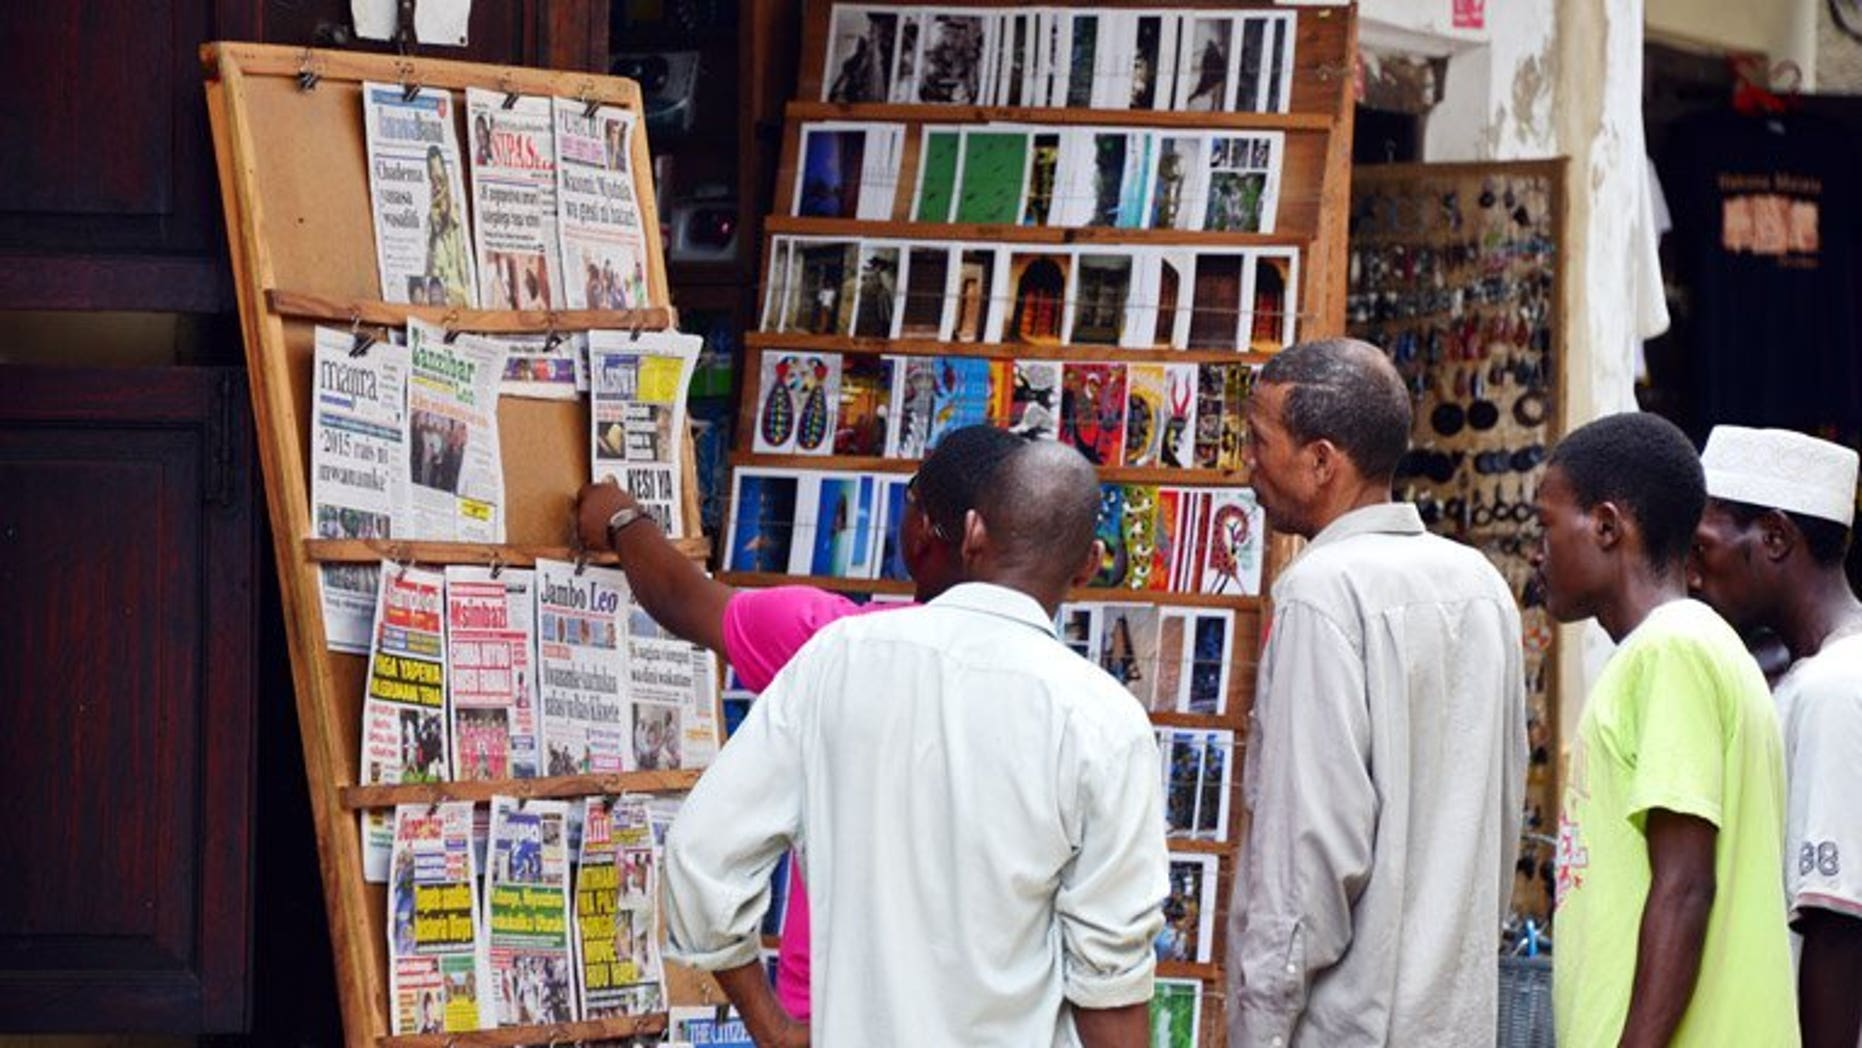 Local people look at a newspaper stand in Stone Town in Zanzibar on January 7. Journalists in Tanzania face increasing threats and lack government protection, with at least ten attacks against the media in the past year, the Committee to Protect Journalists said Tuesday.